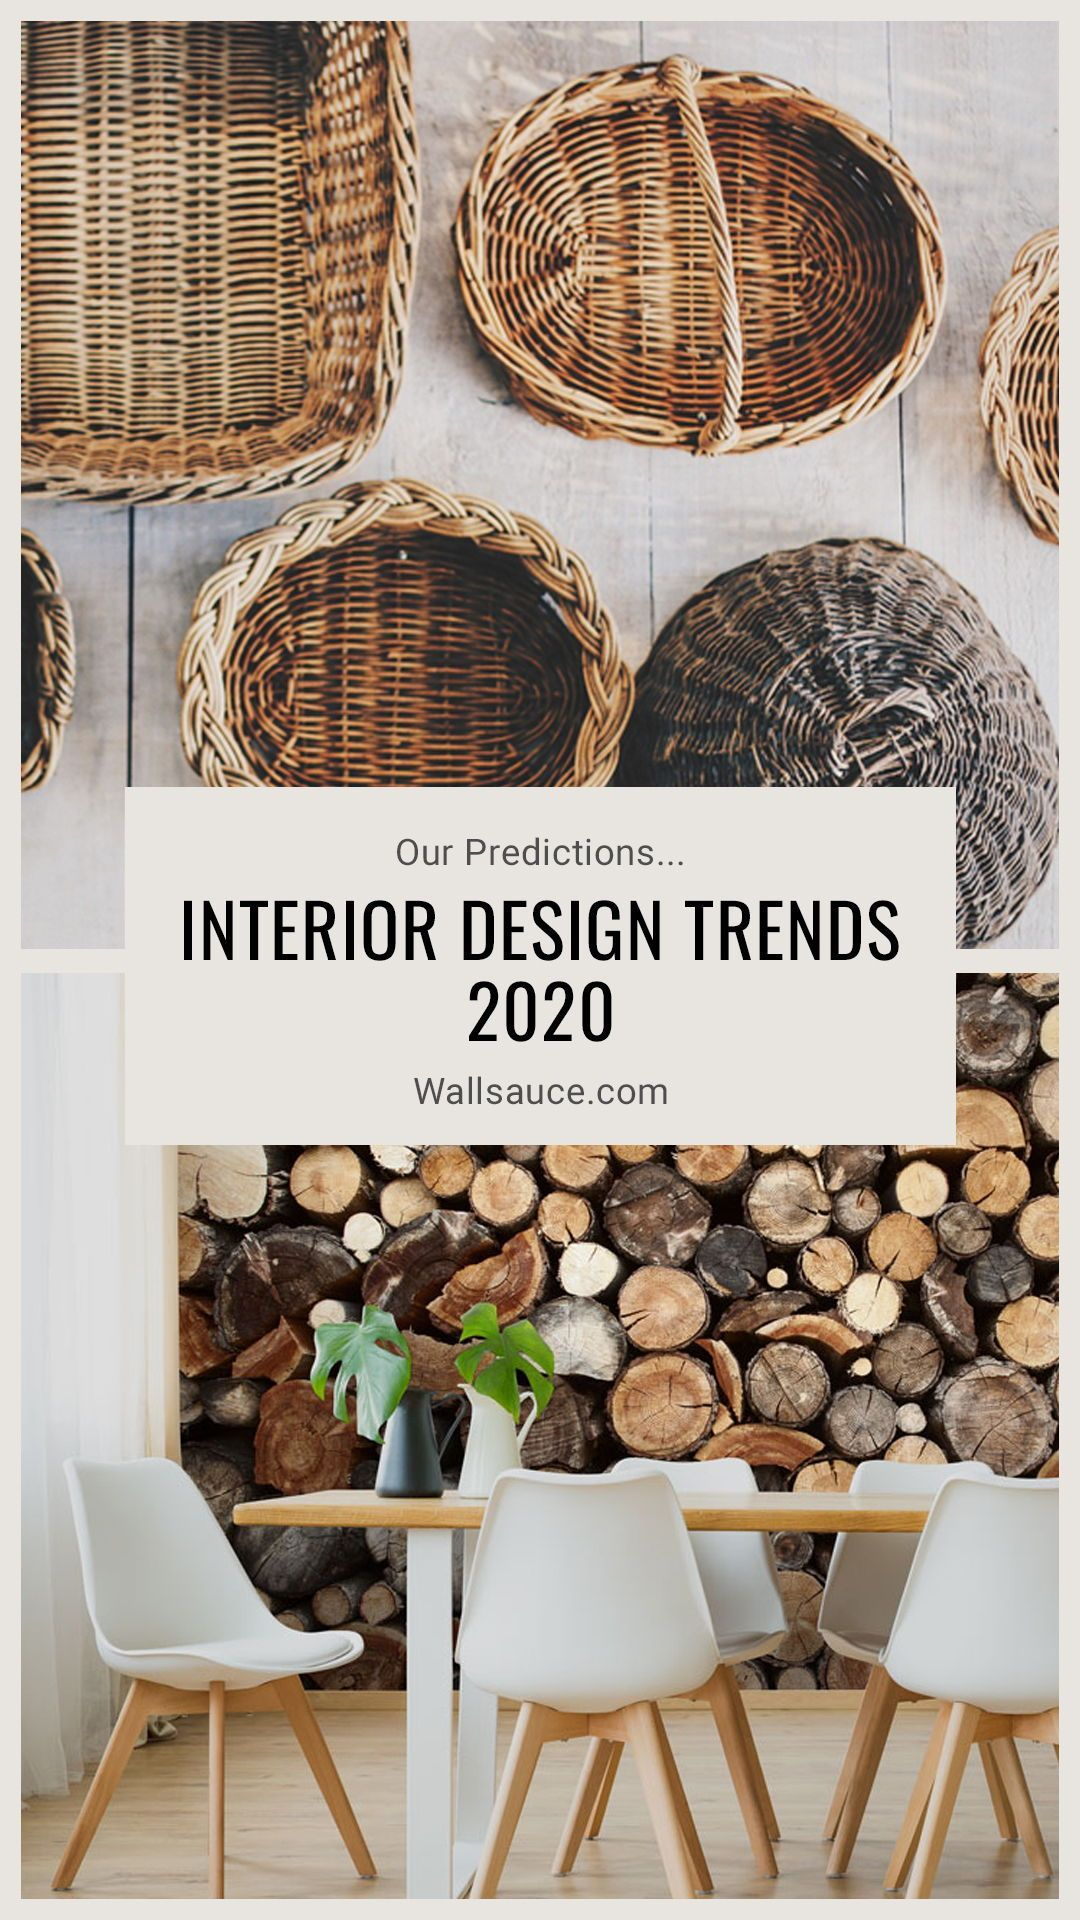 2020 Home Decor Trends Home Decor Trends For 2020 In 2020 Trending Decor Home Decor Trends Kitchen Wallpaper Trends